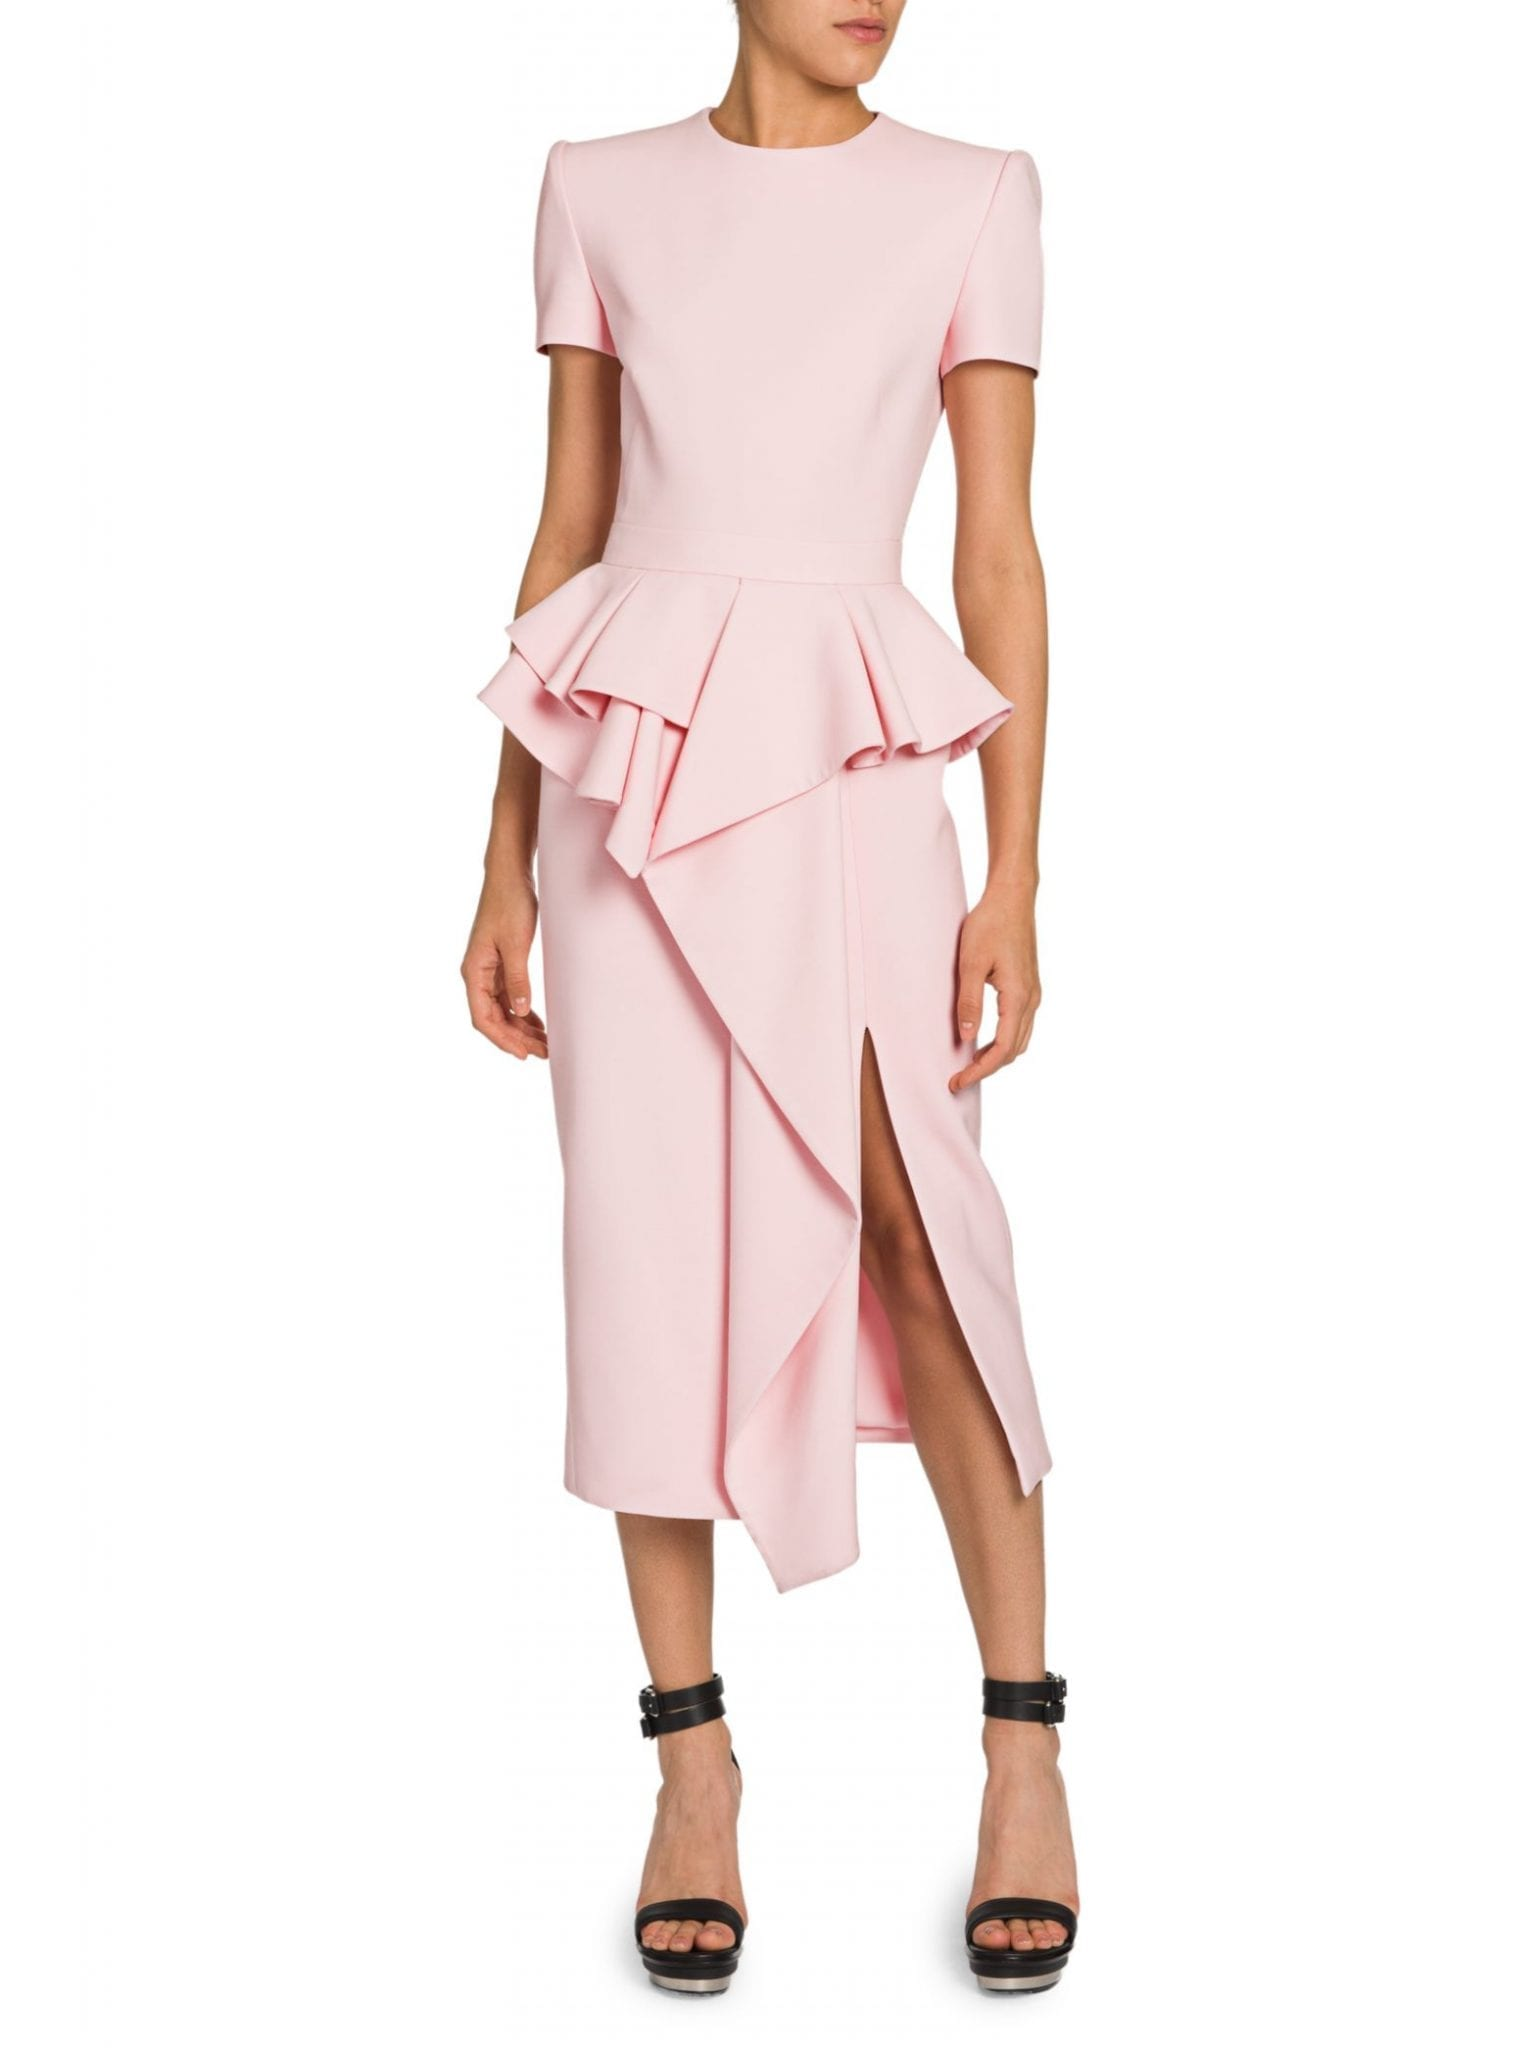 ALEXANDER MCQUEEN Peplum Ruffle Sheath Dress